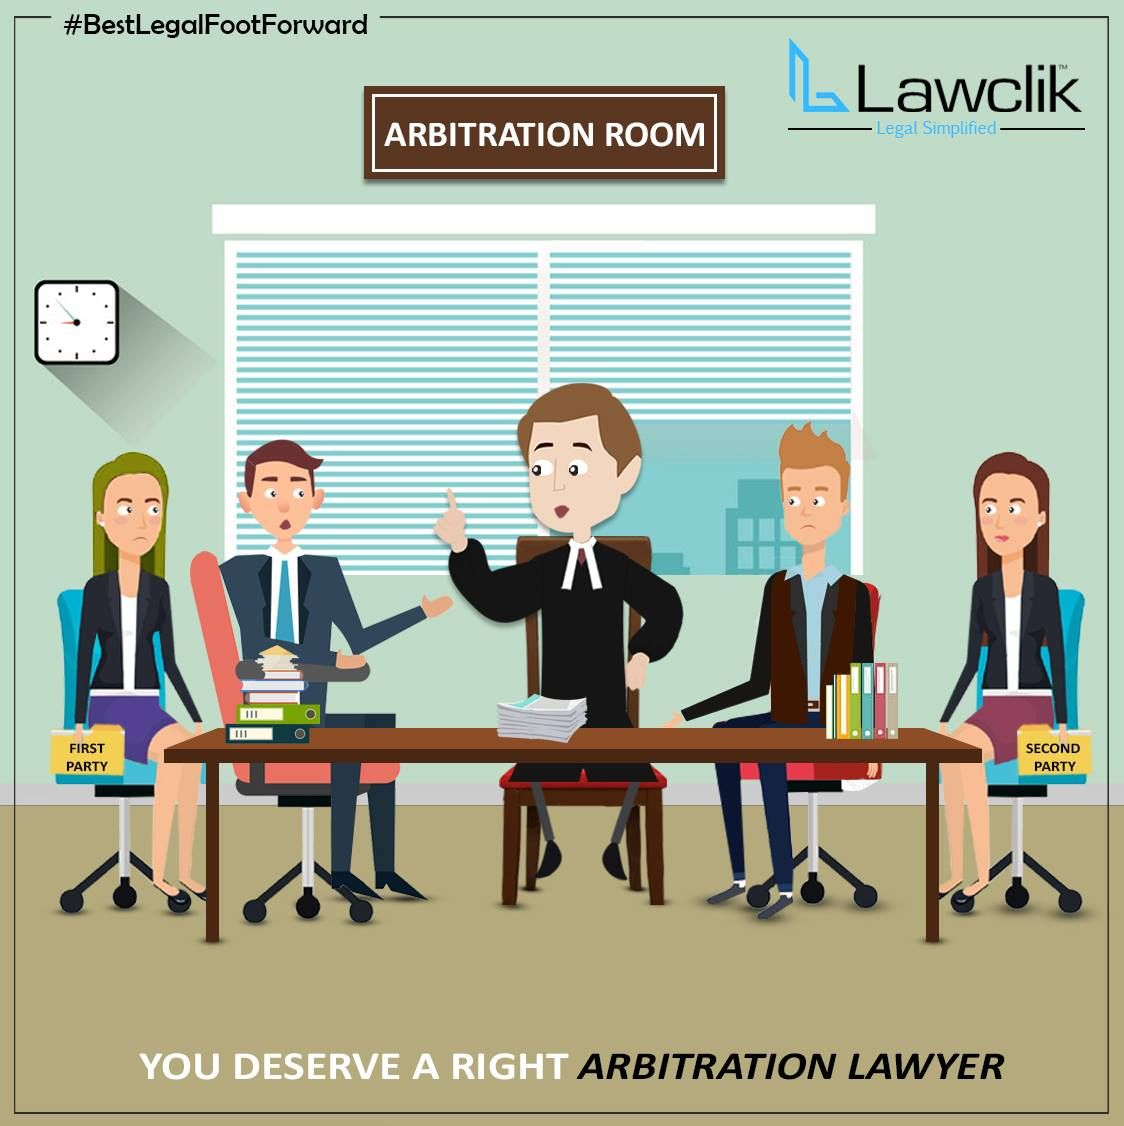 You Deserve A Right Arbitration Lawyer Lawclik Covers All Your